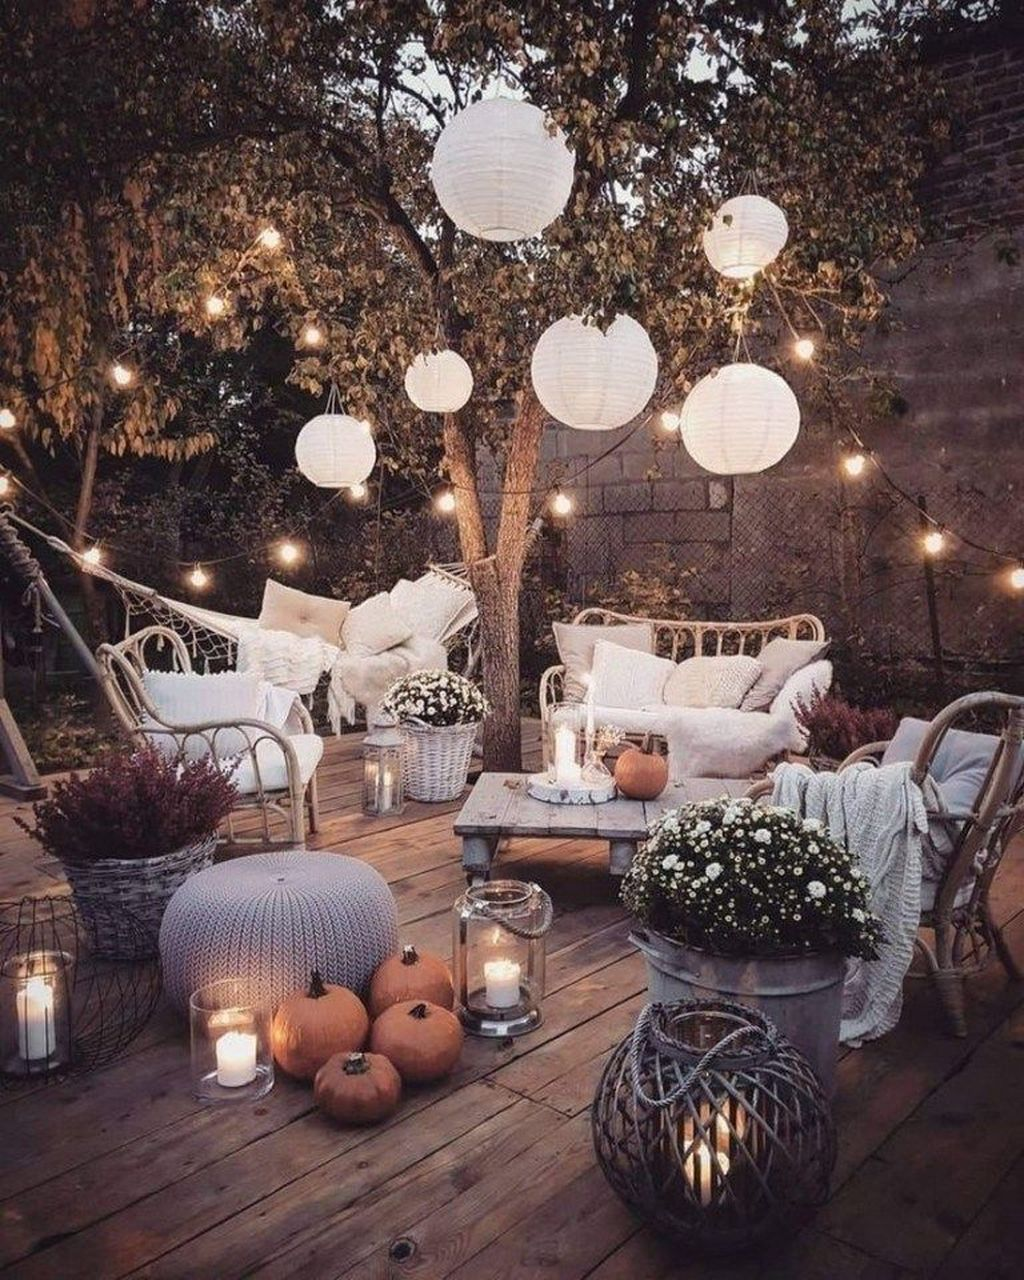 The Best Backyard Summer Party Decorating Ideas 19